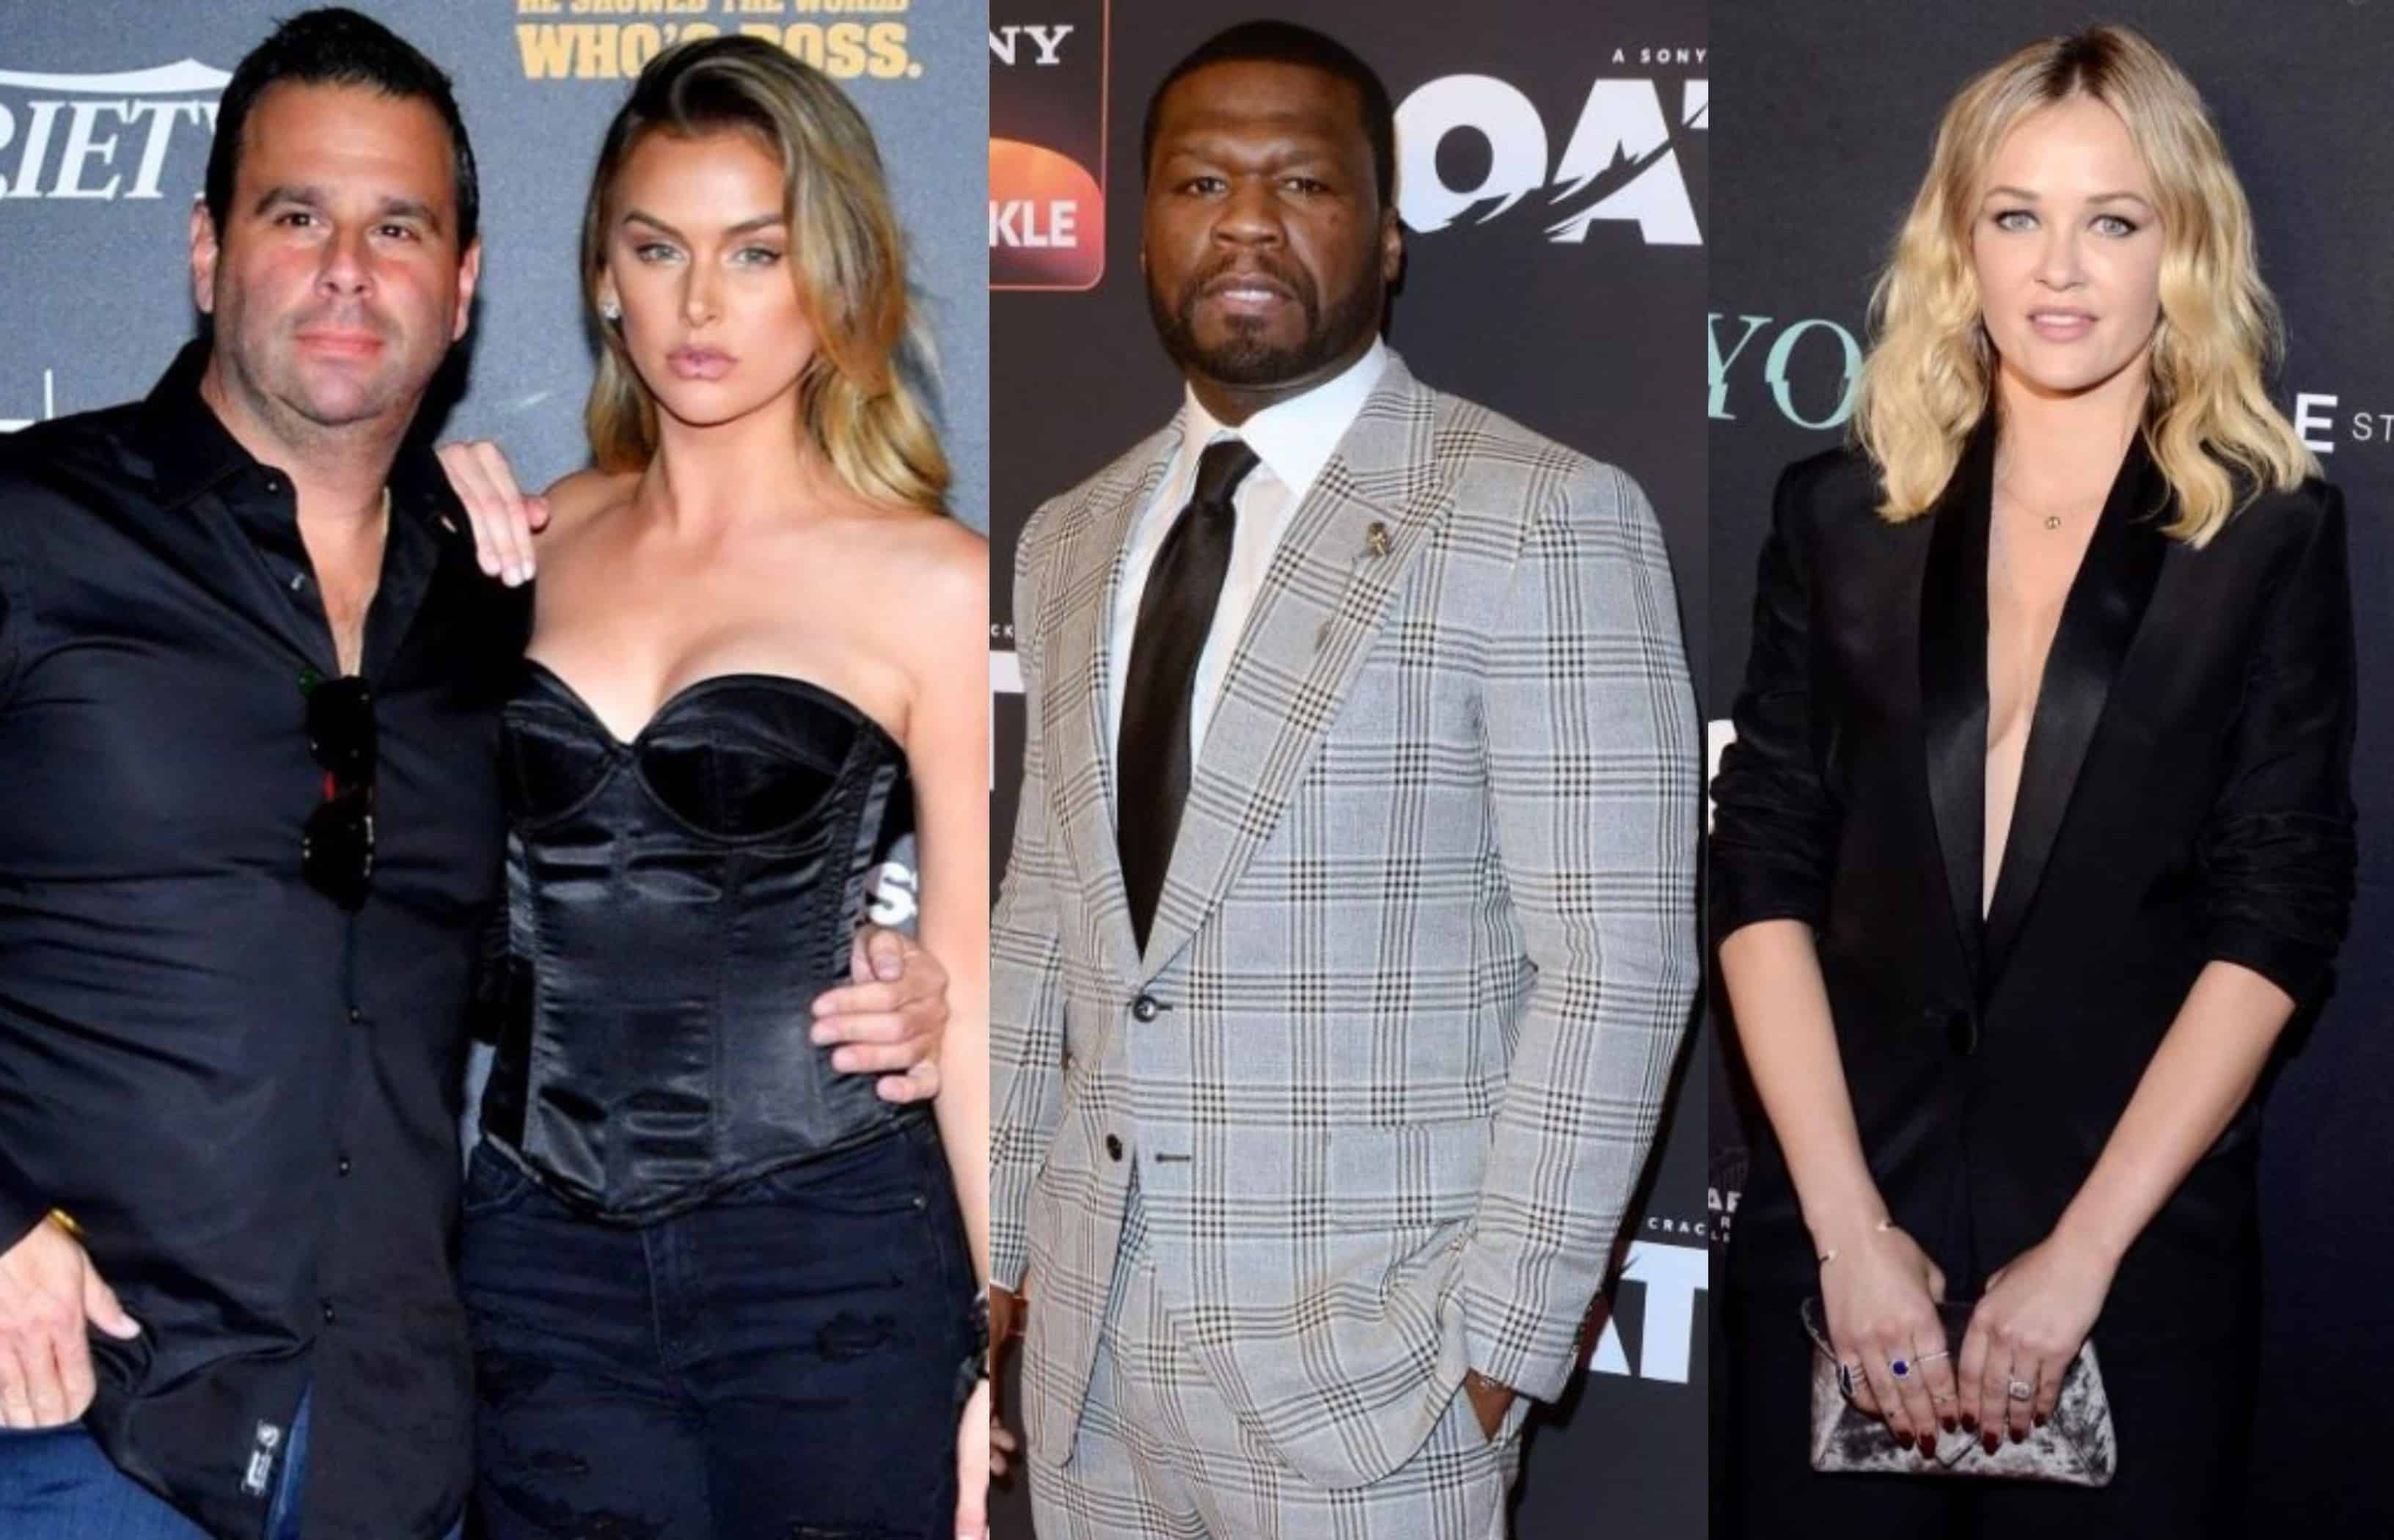 Vanderpump Rules' Lala Kent Fires Back at 50 Cent's Cocaine Allegations and Take Stand Against Cyberbullying as He Slams Her Again, Plus Ambry Childers Weighs in on Their Feud